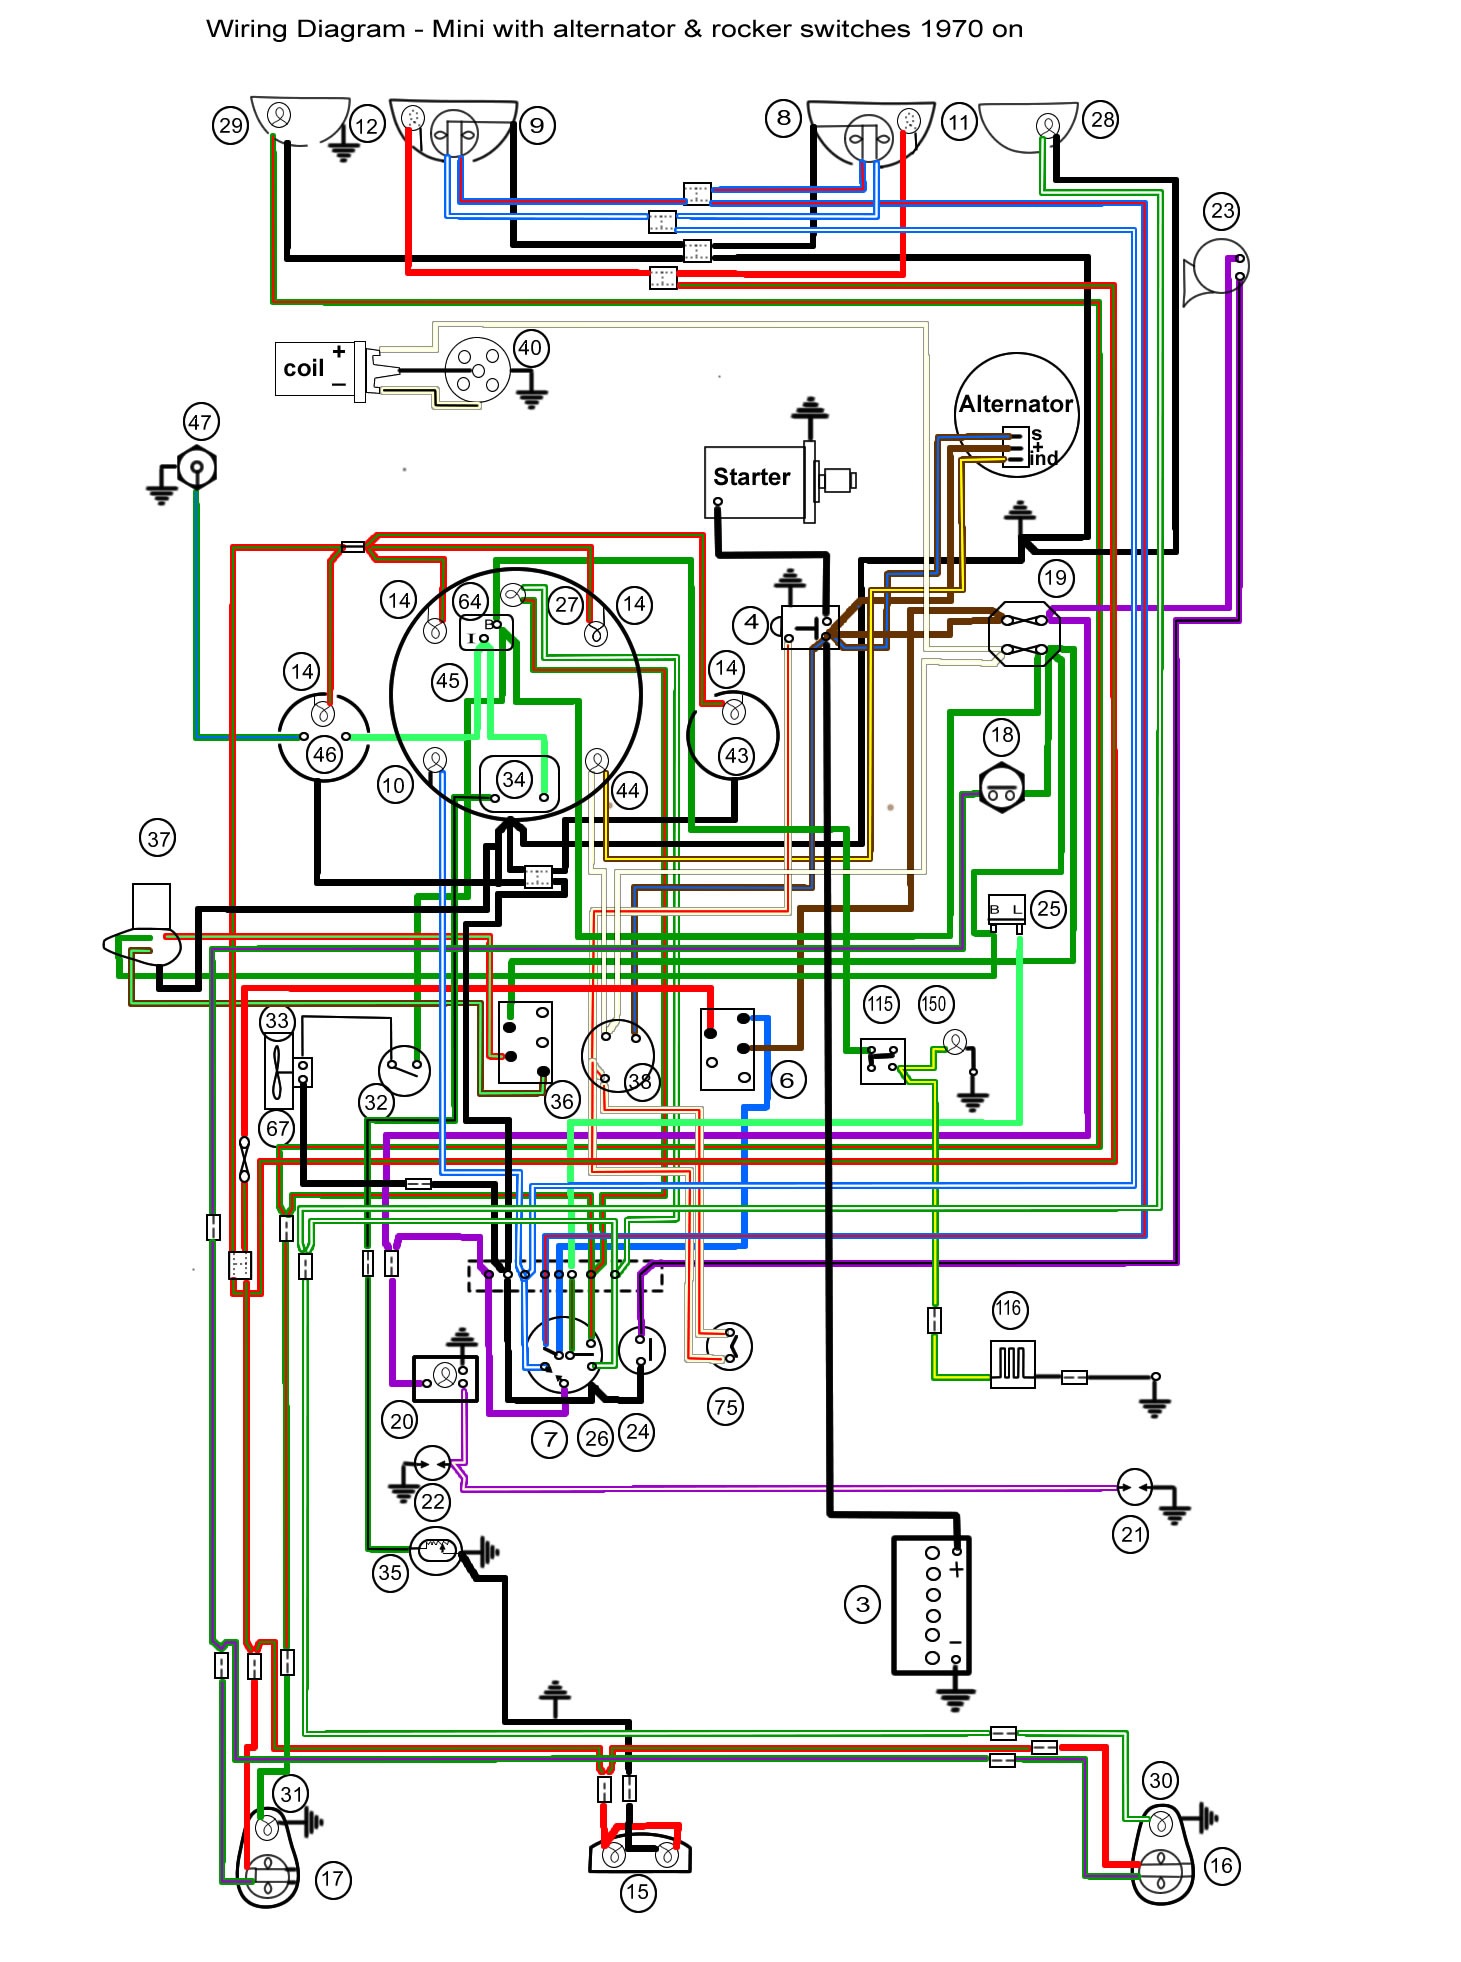 751C1 2008 Rocker C Wiring Diagram | Wiring ResourcesWiring Resources